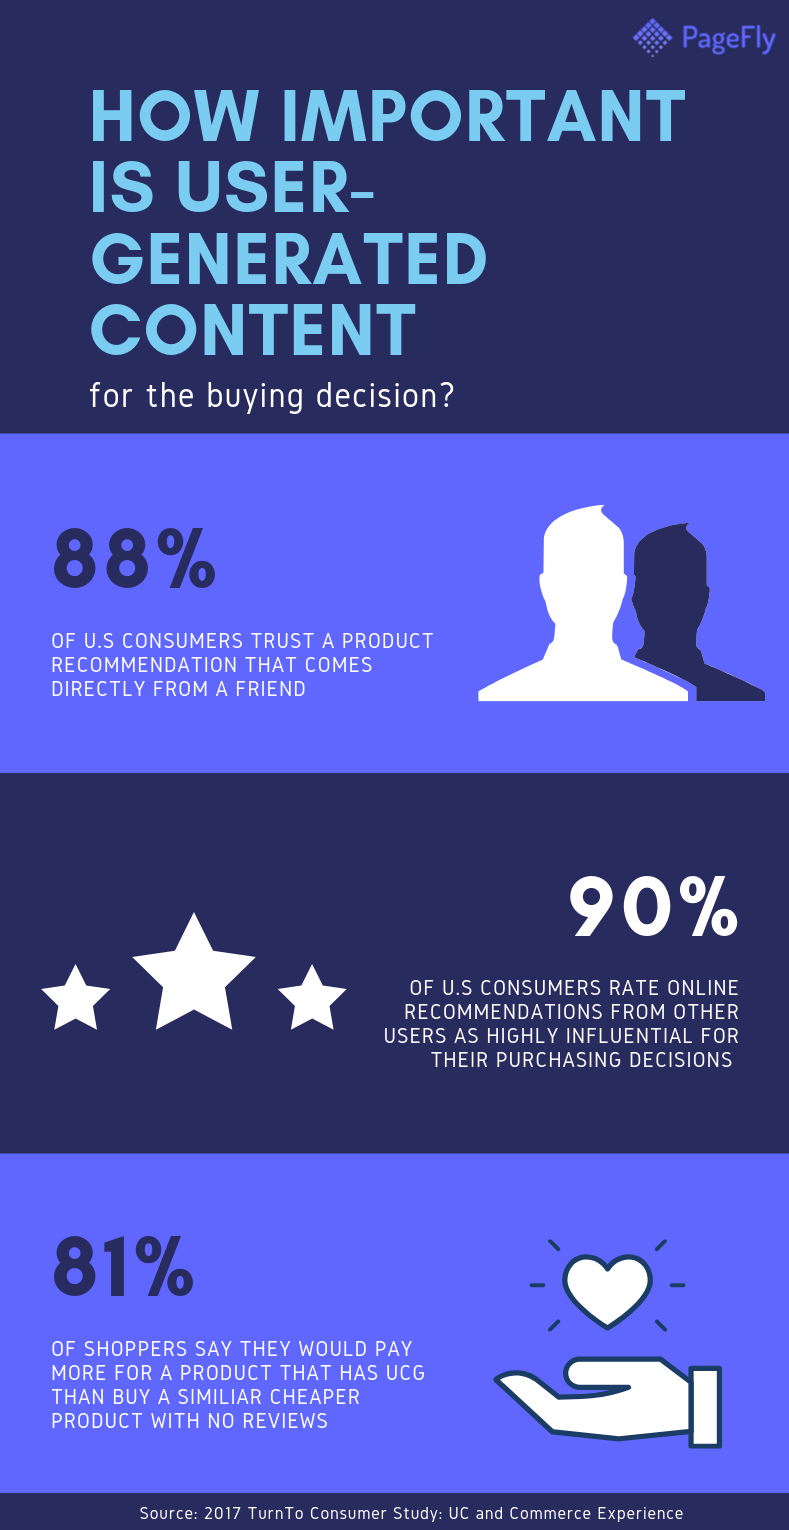 HOW IMPORTANT IS USER GENERATED CONTENT 11